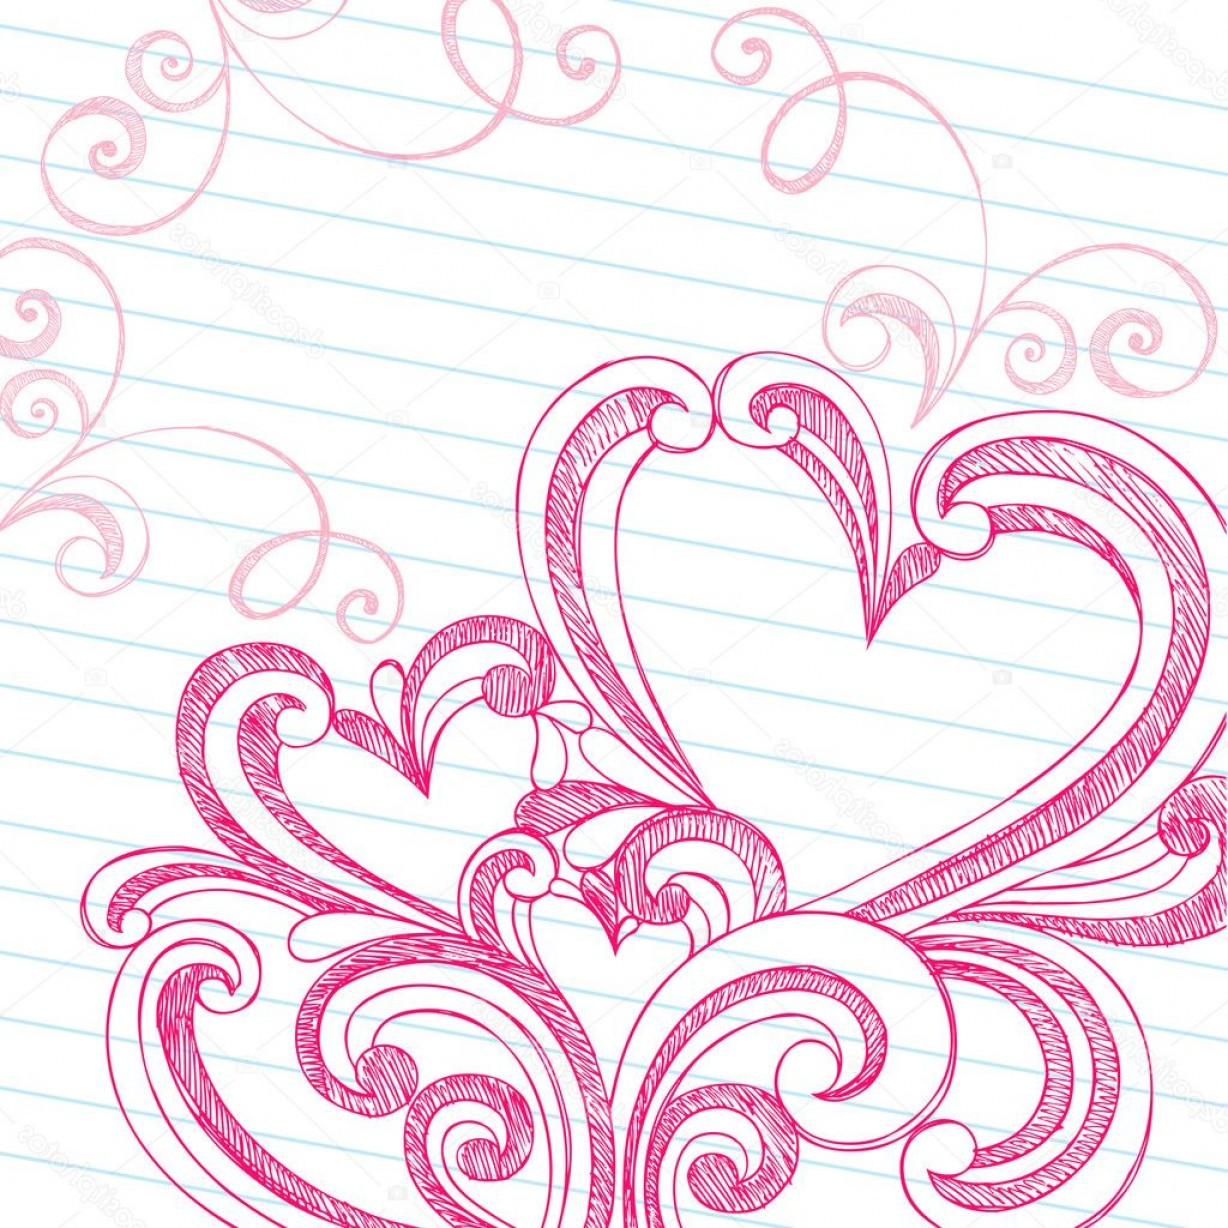 Love Heart Swirl Vector: Stock Illustration Heart Shaped Sketchy Doodle Swirls